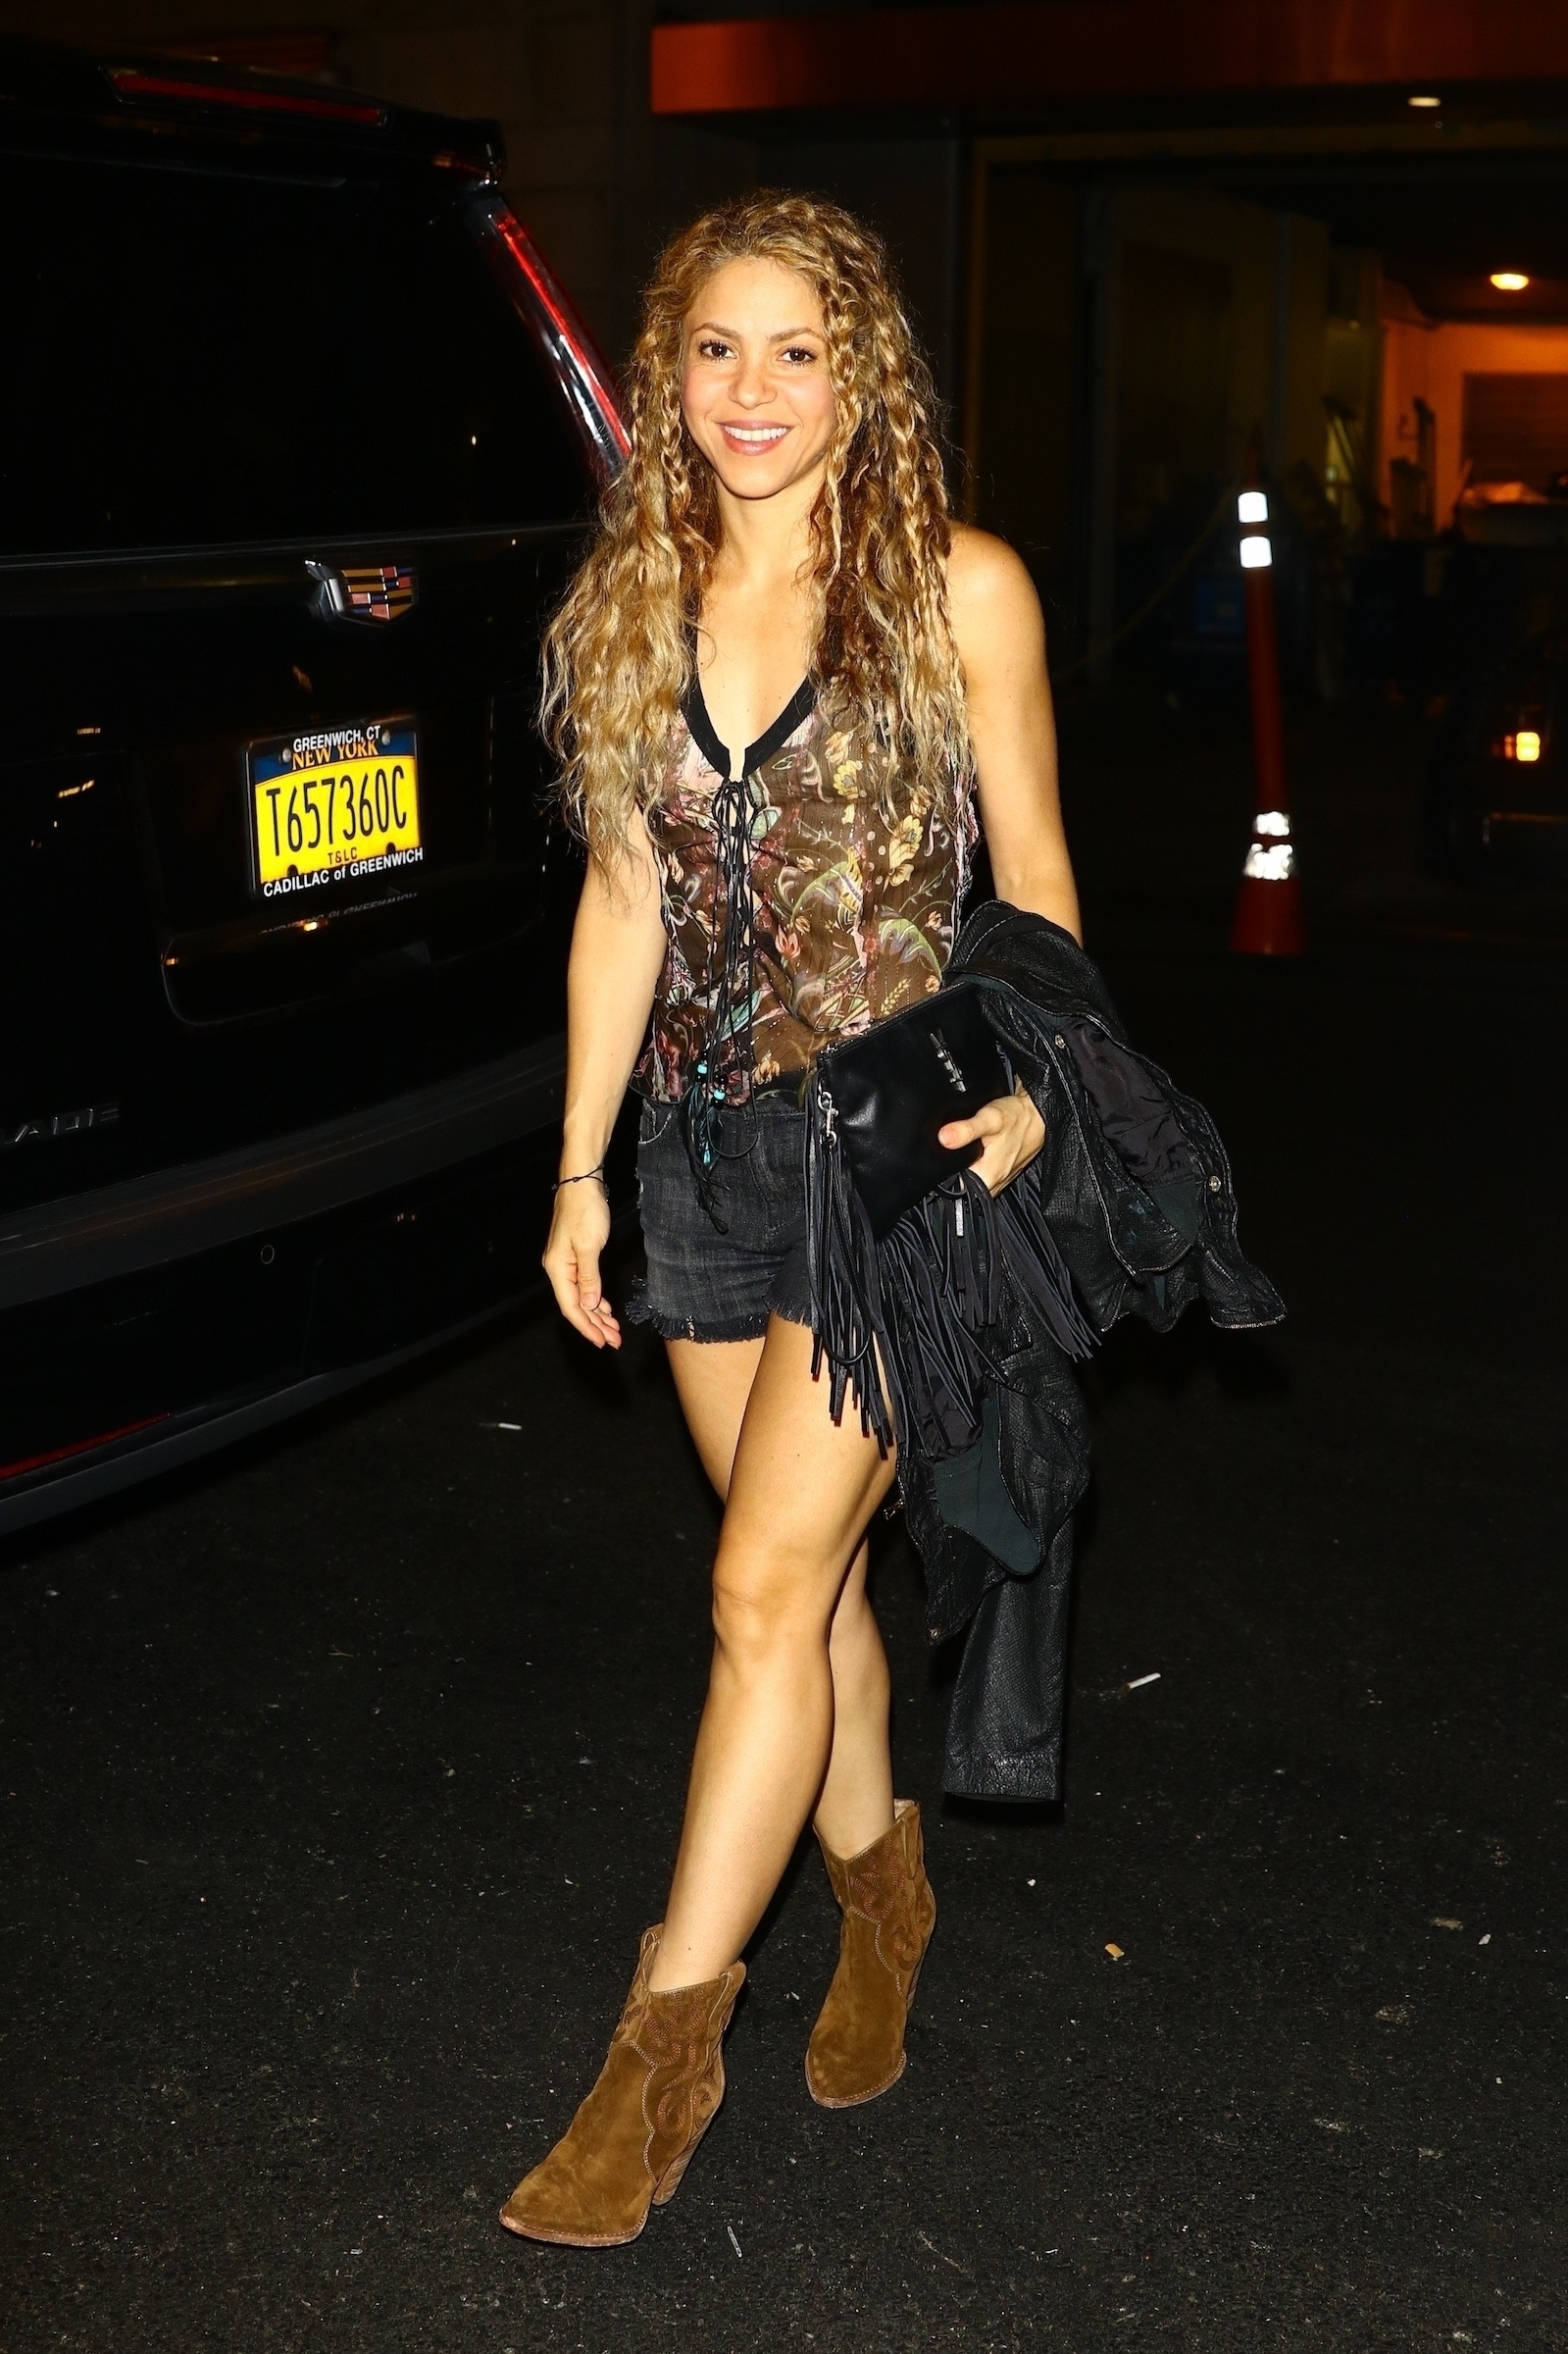 78215220_shakira-in-new-york-20180809-6.jpg